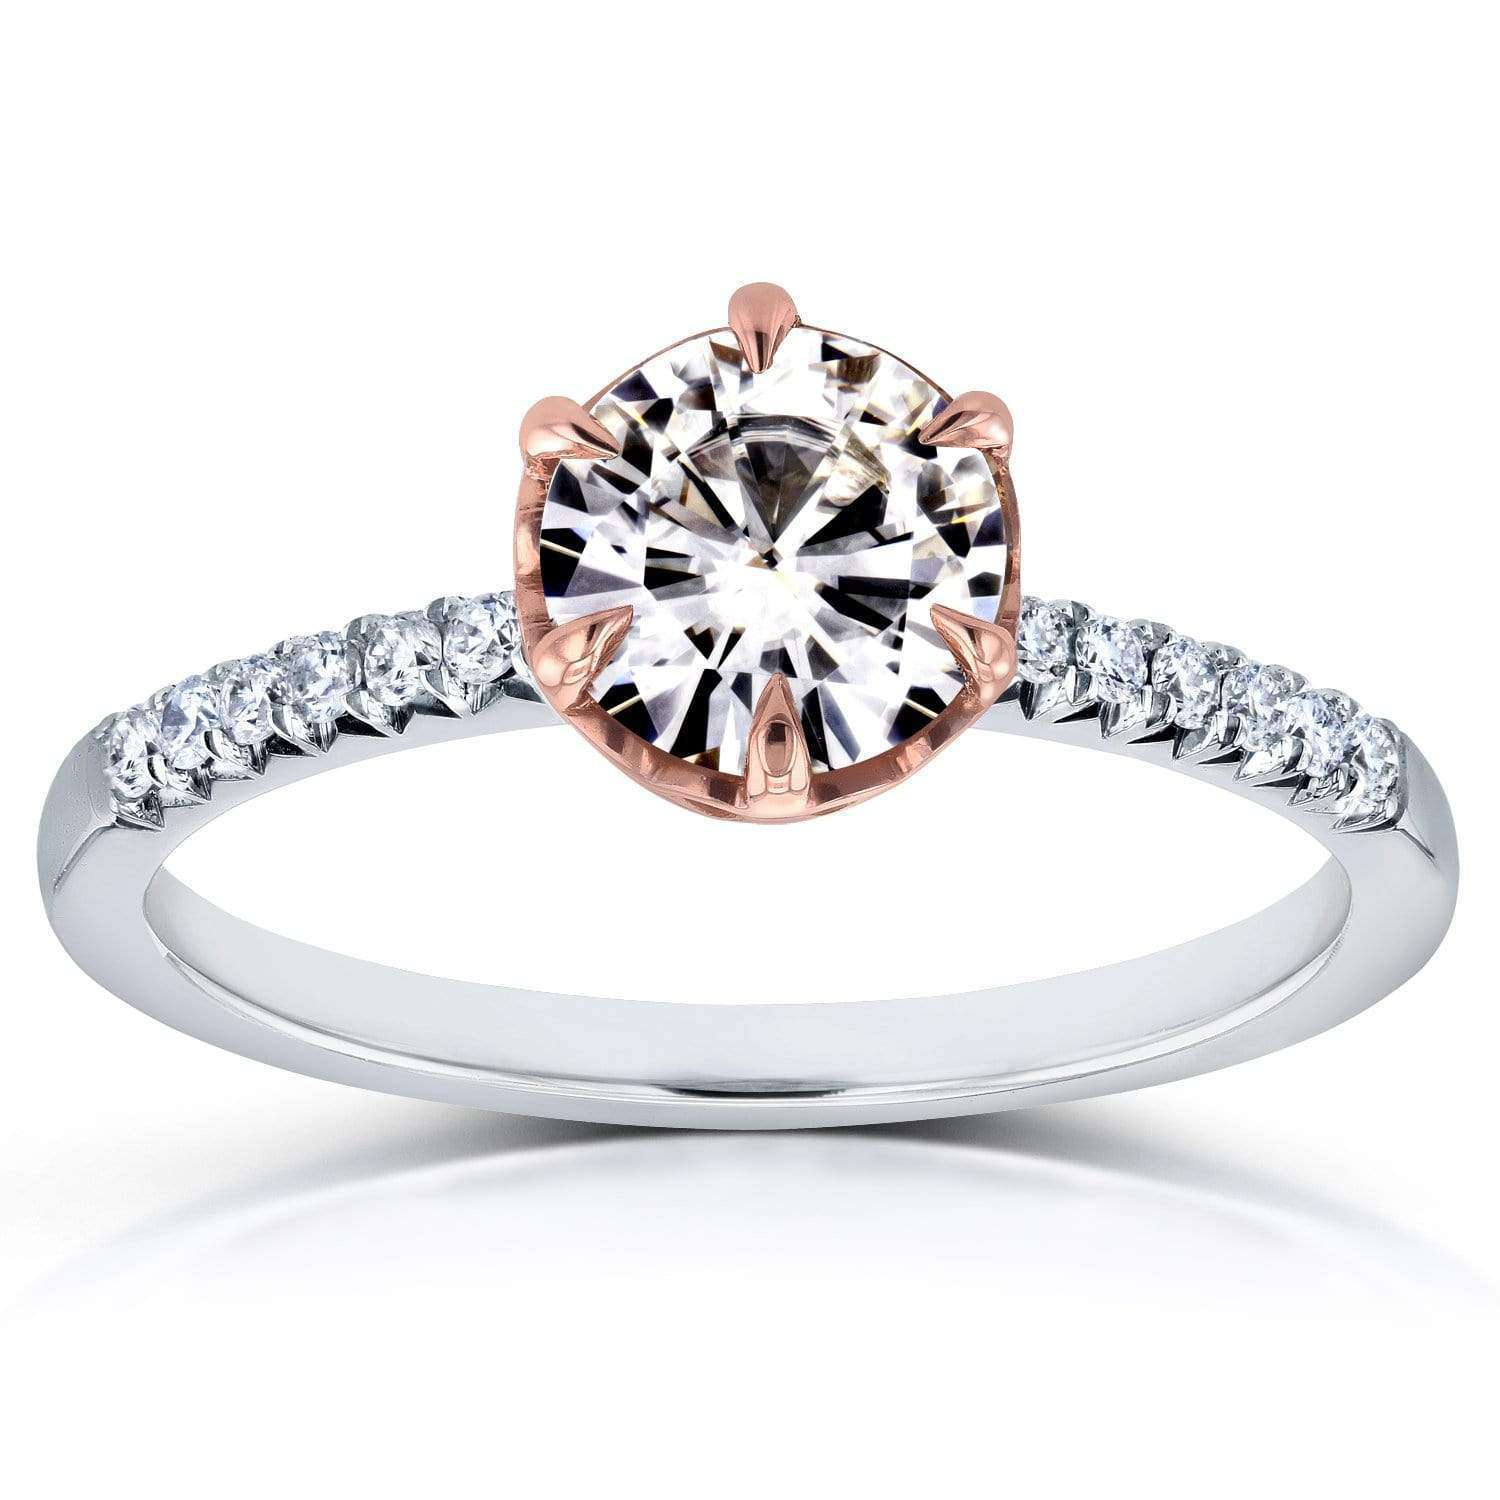 Reviews Round Diamond Engagement Ring 1 1/8 CTW in Two-Tone 14k Gold - 8.5